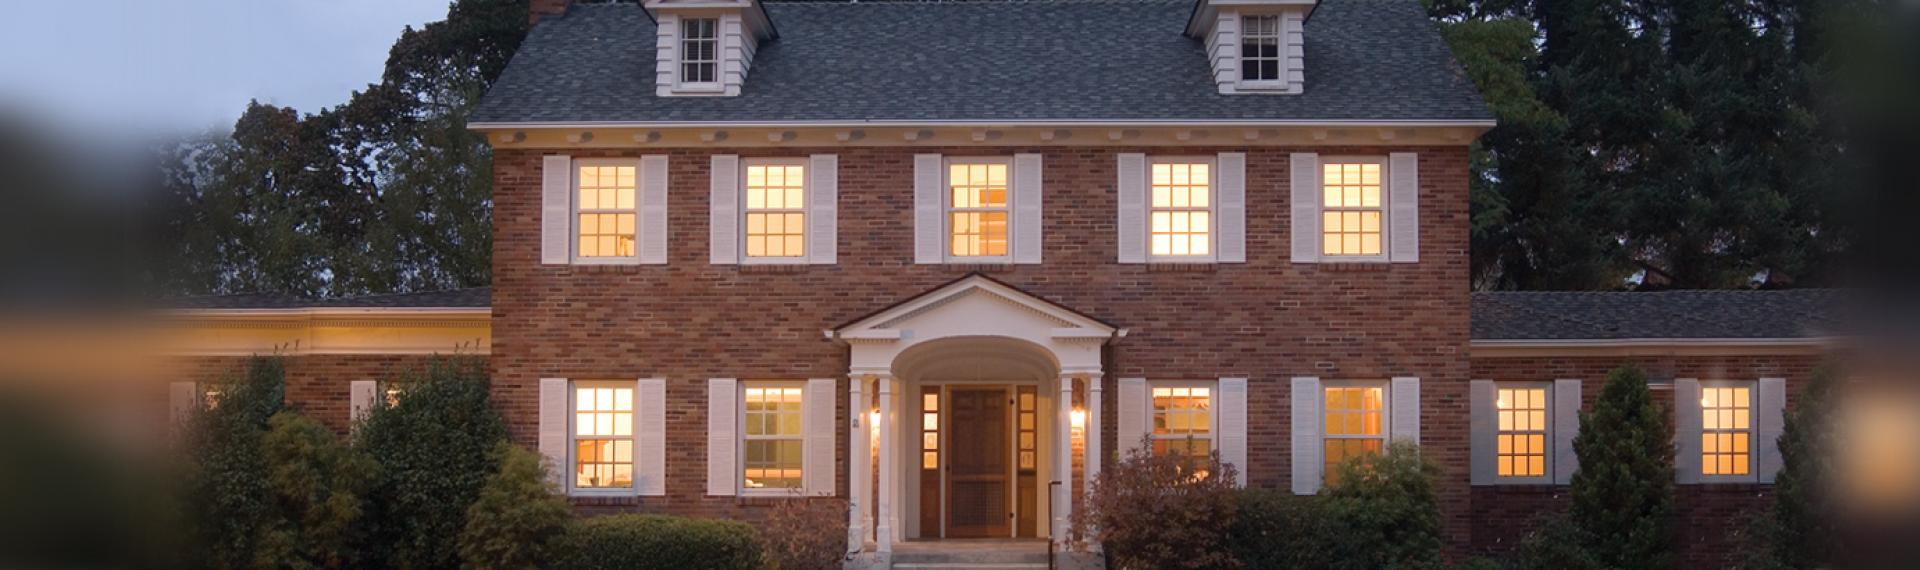 Colonial Architectural Style Considerations Milgard